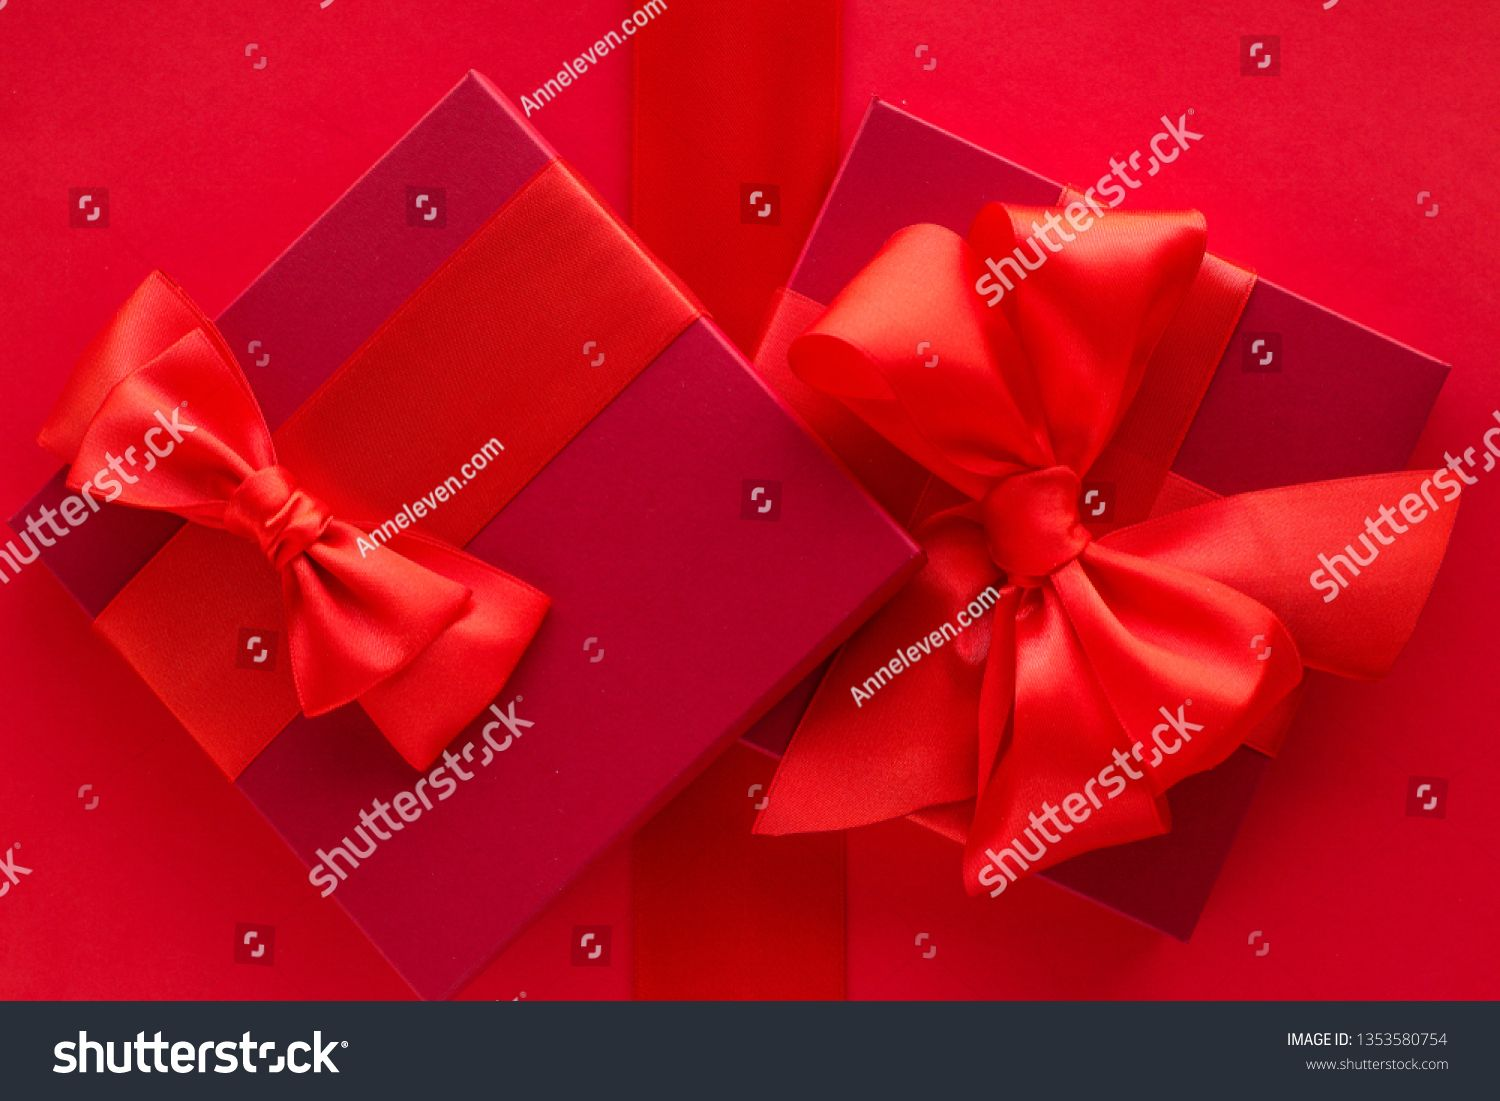 Romantic Celebration Lifestyle And Birthday Present Concept Luxury Holiday Gifts On Red Ad Affiliate Bi In 2020 Luxury Holiday Gift Birthday Presents Birthday